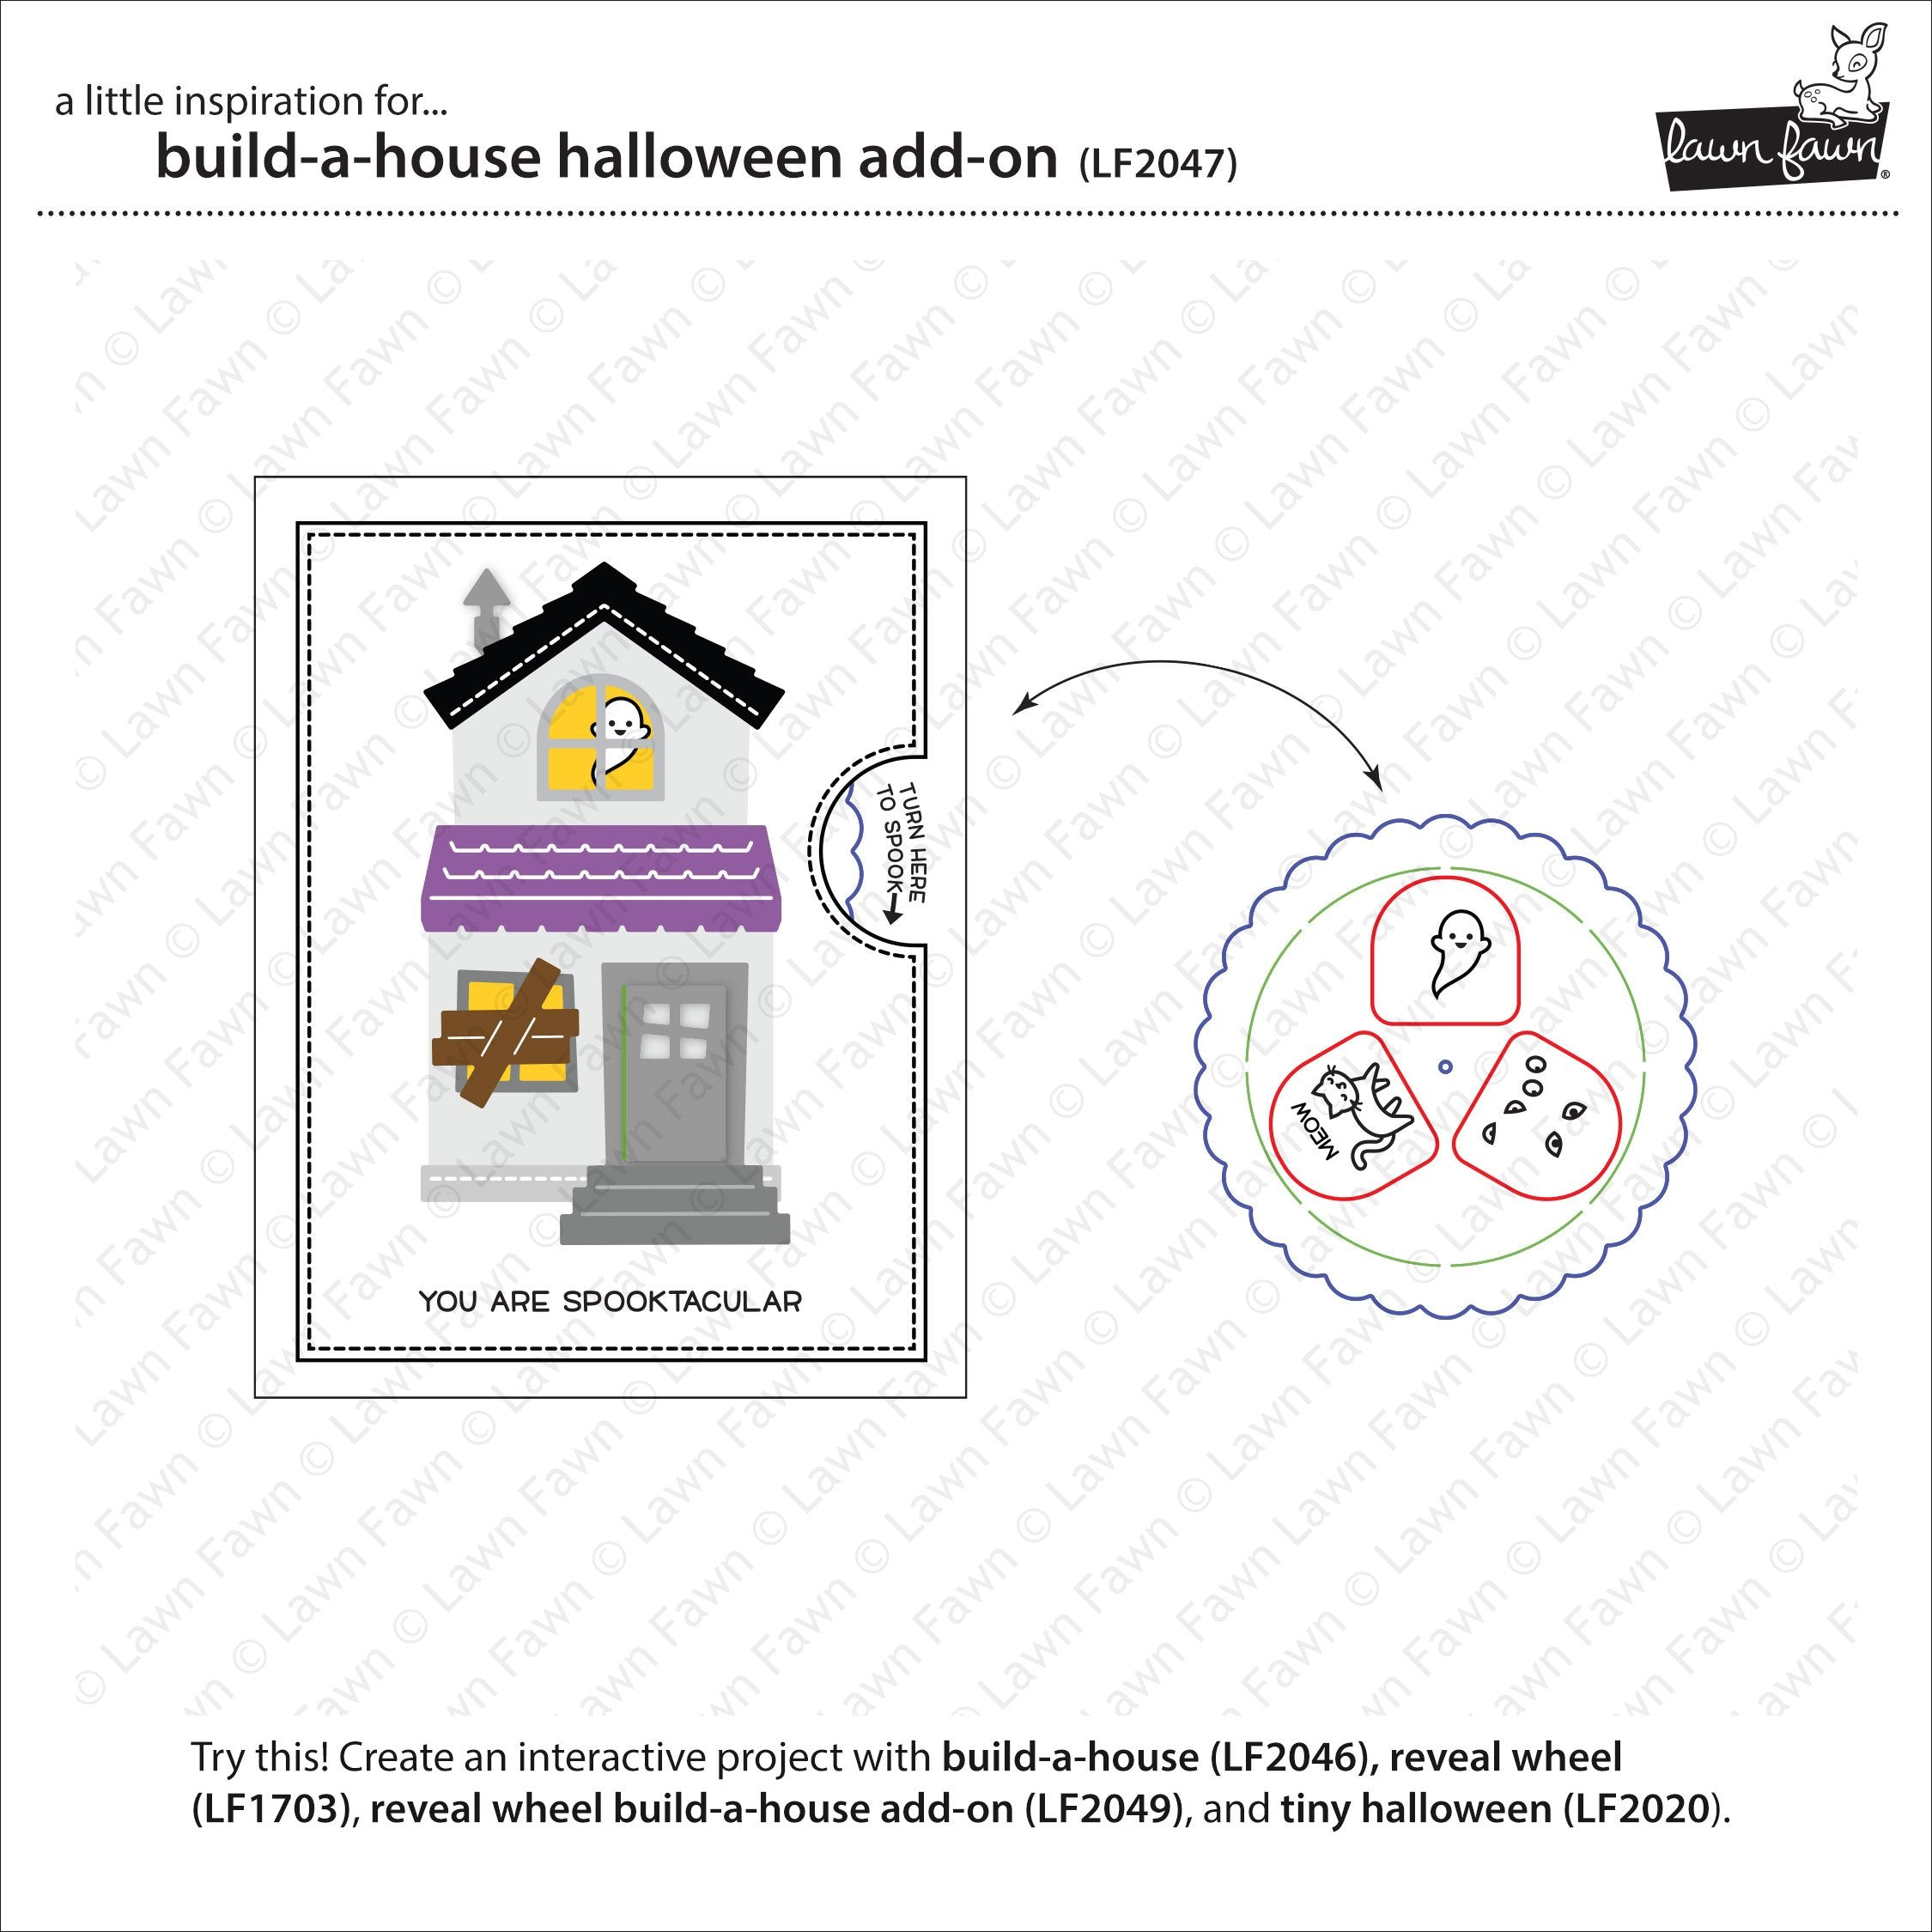 build-a-house halloween add-on